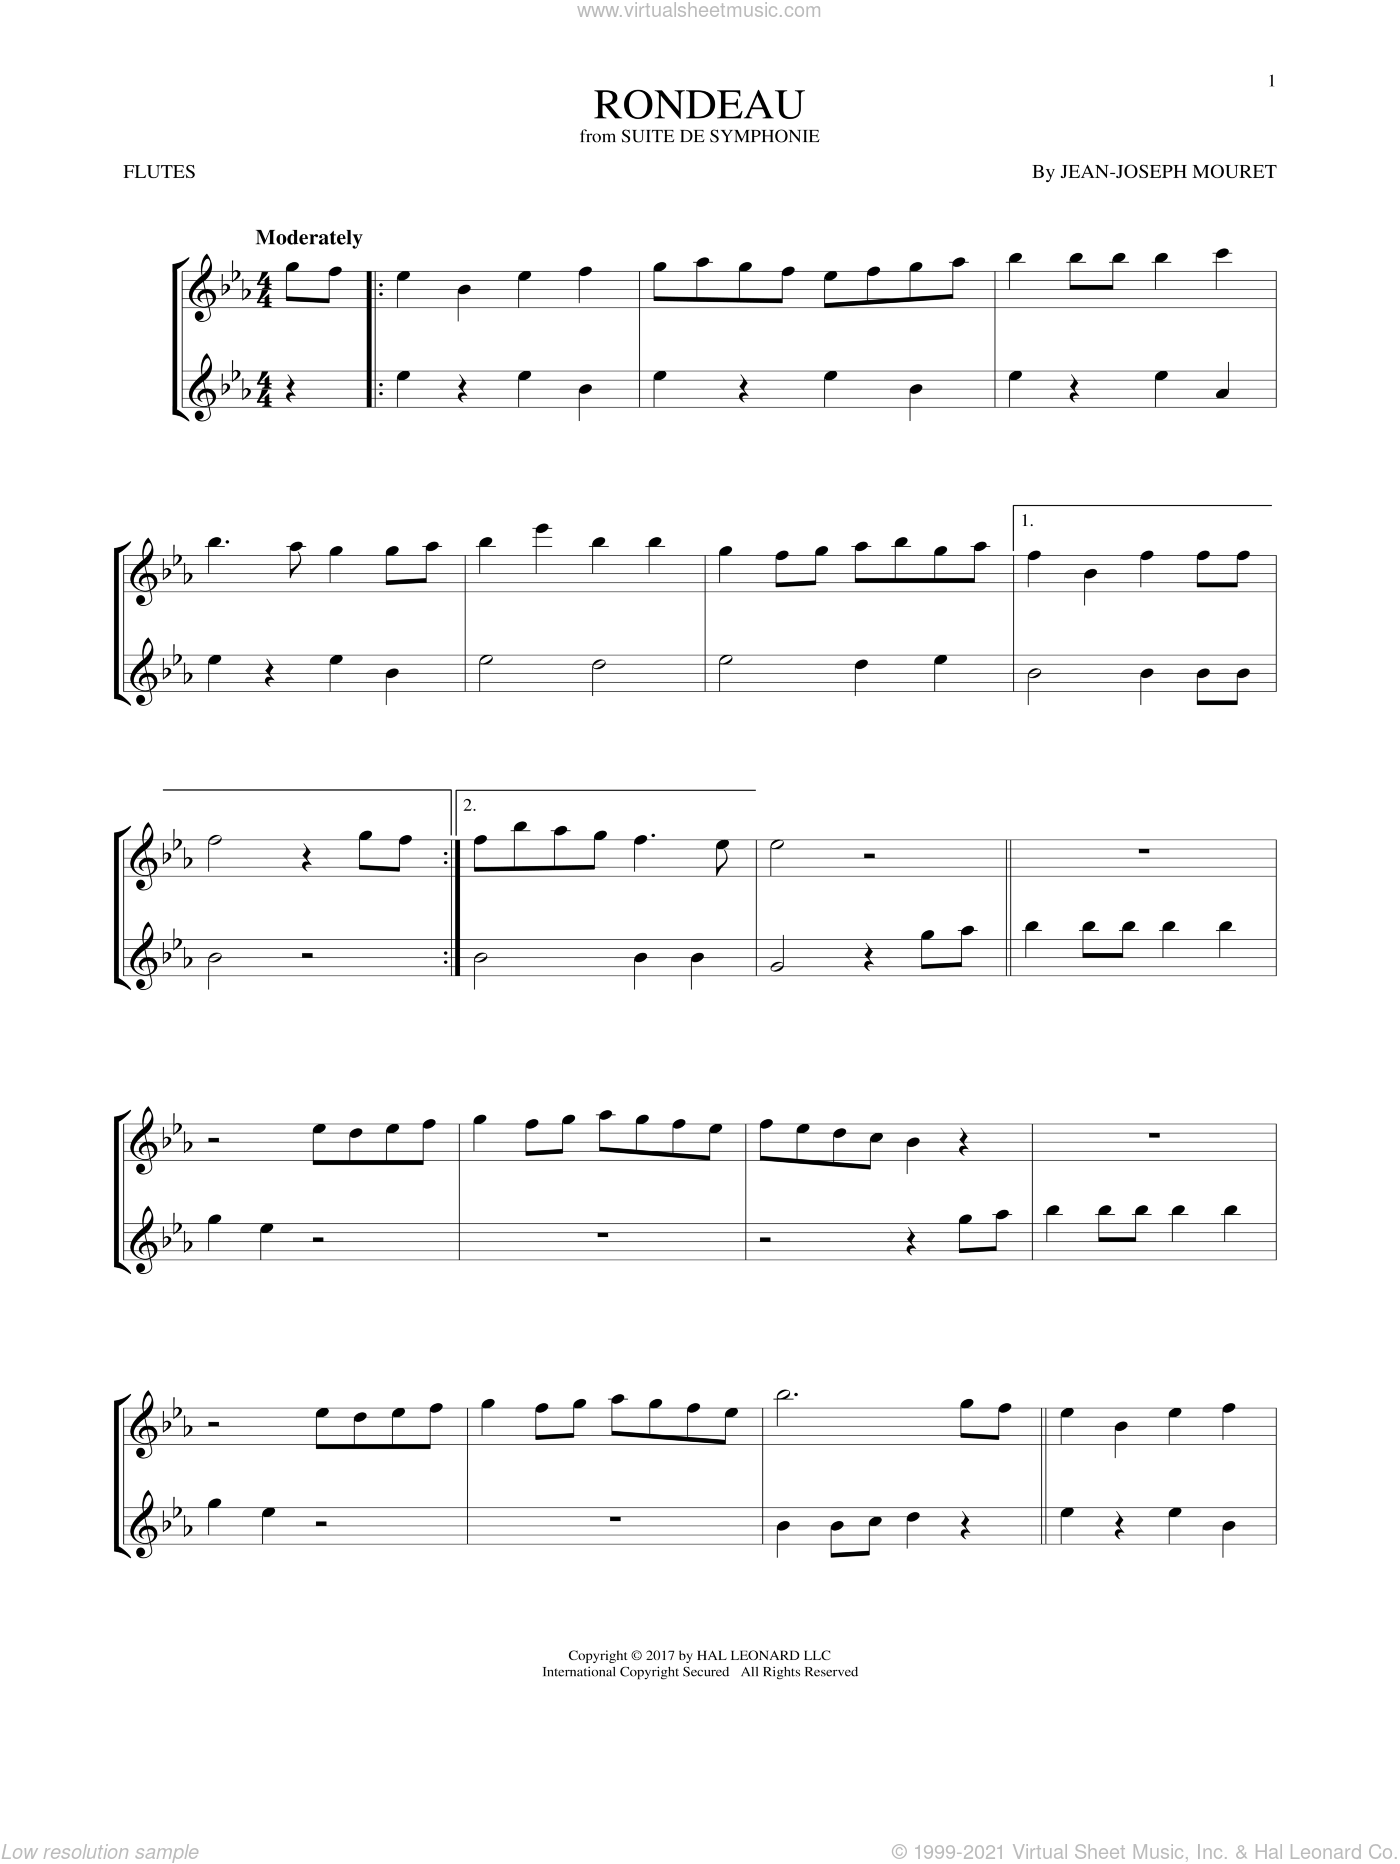 Fanfare Rondeau sheet music for two flutes (duets) by Jean-Joseph Mouret, classical score, intermediate skill level